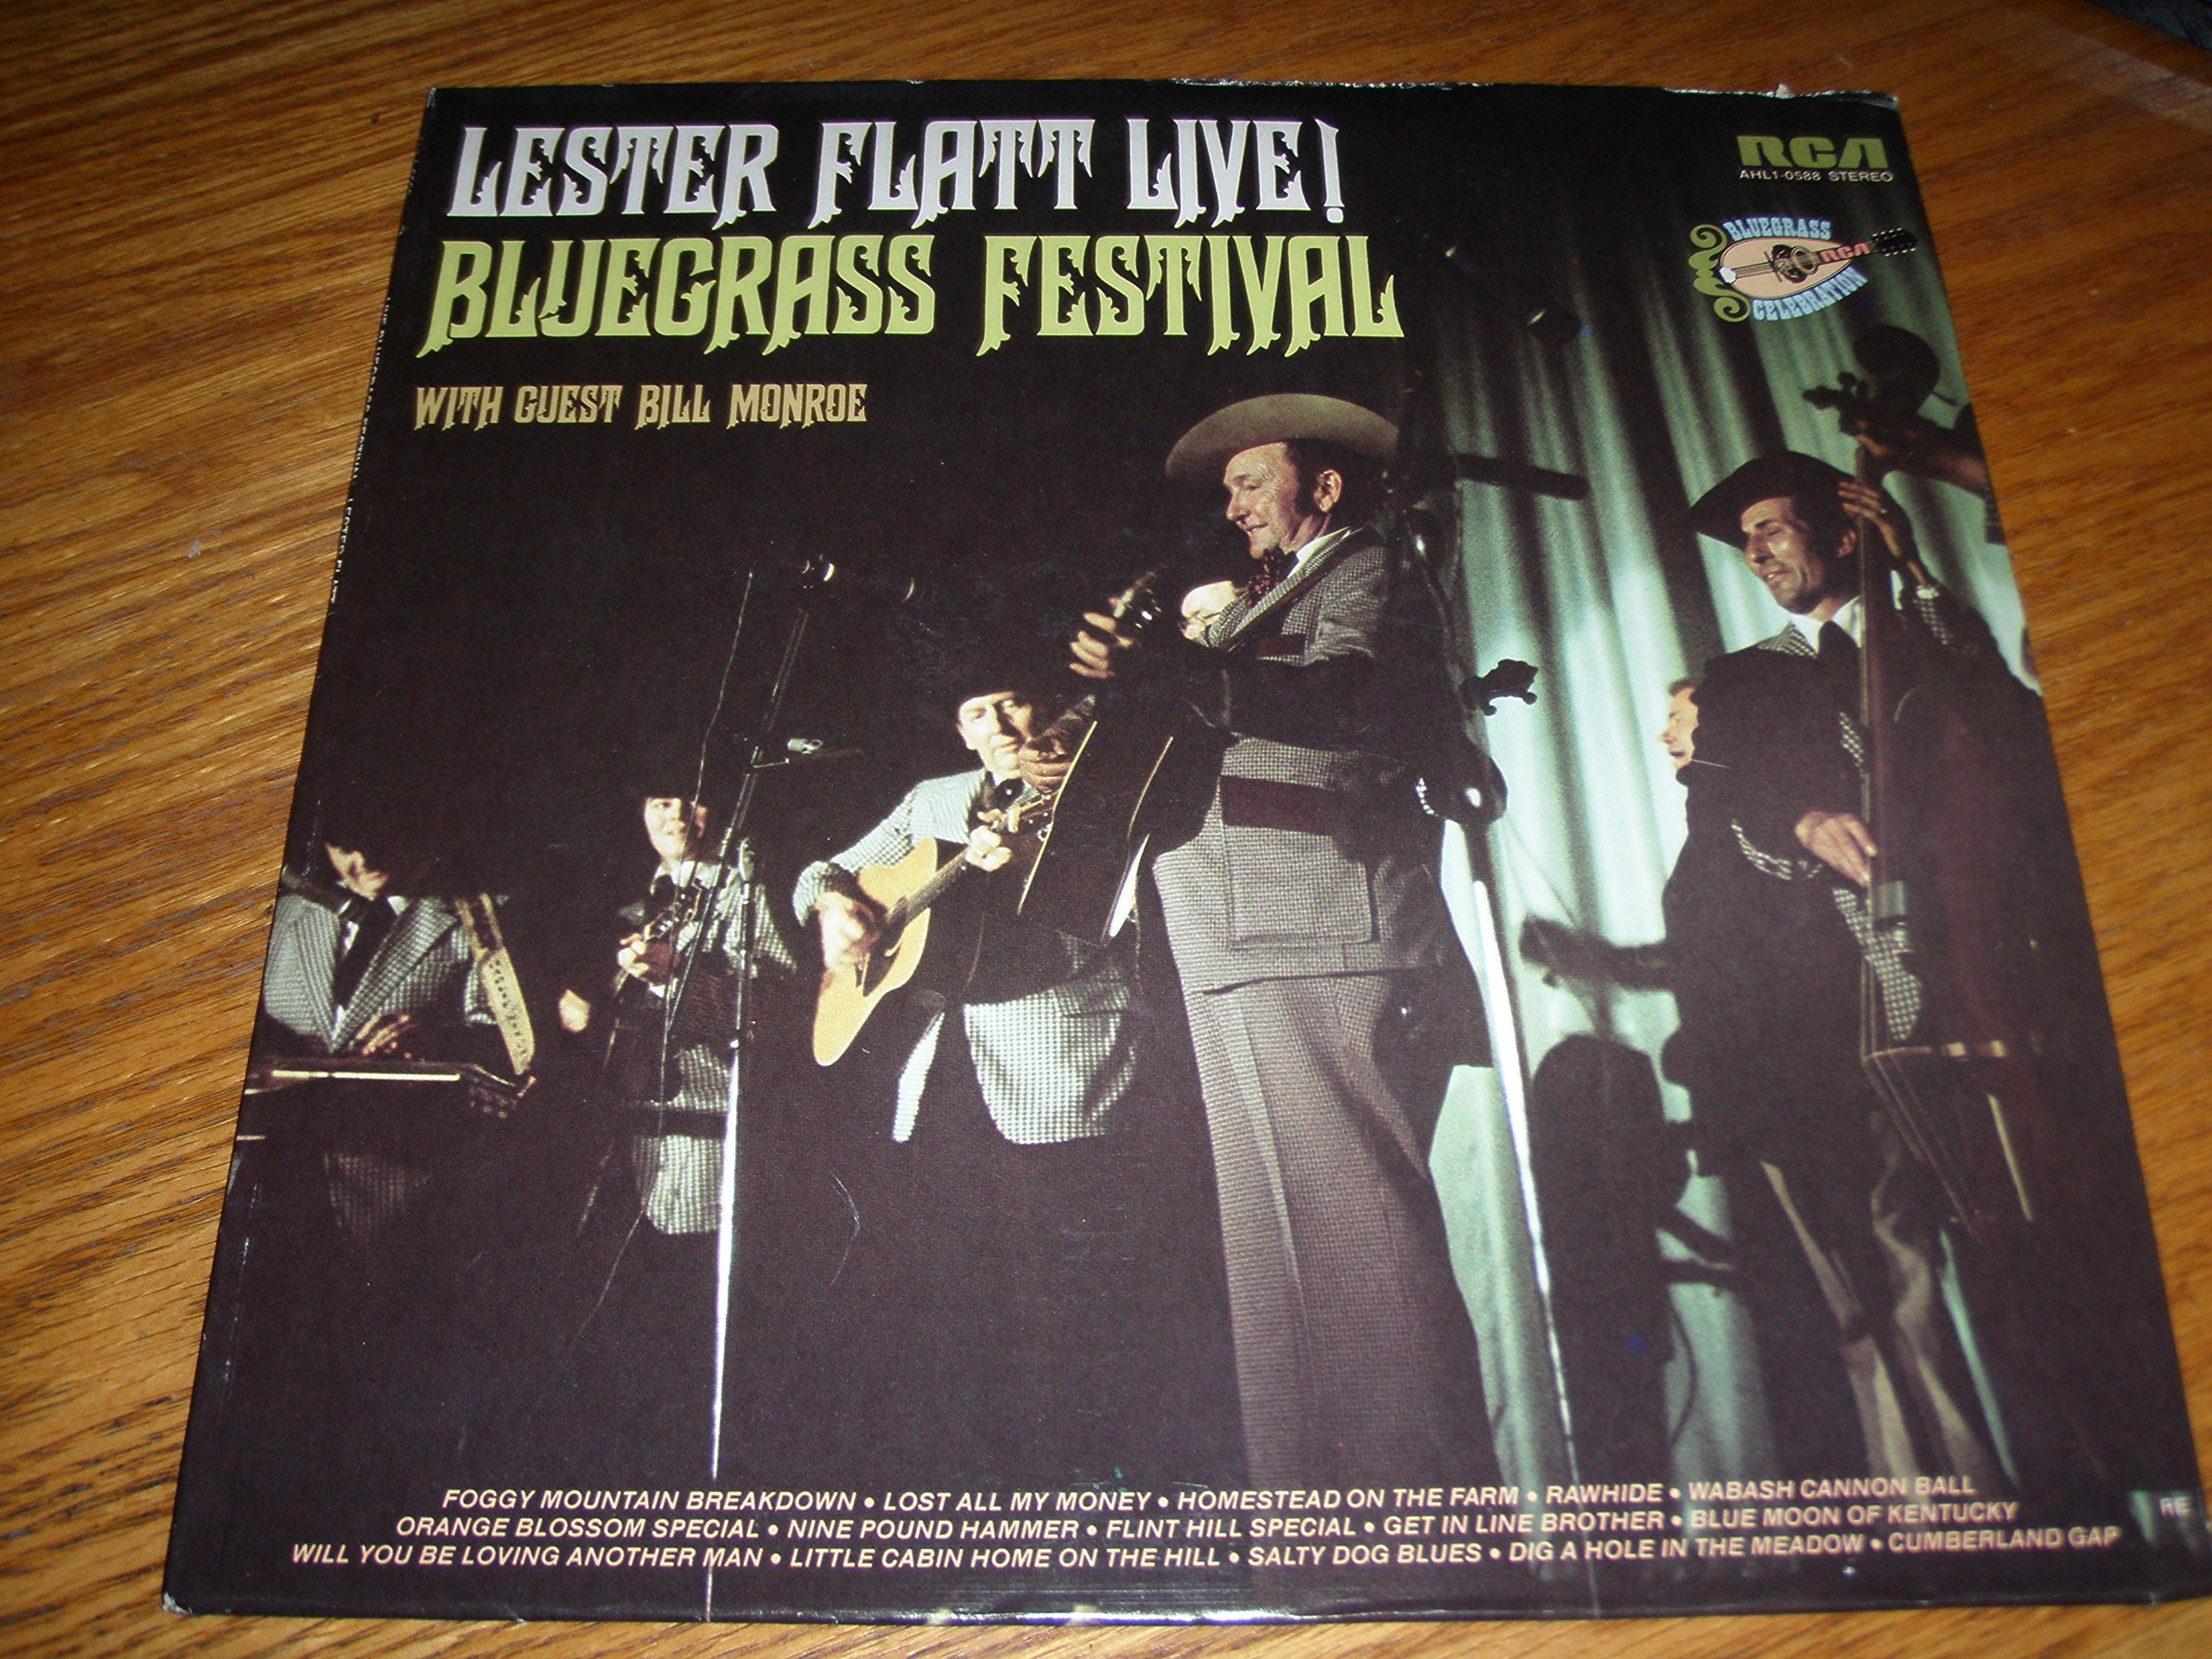 Live! Bluegrass Festival with Guest Bill Monroe by RCA Victor